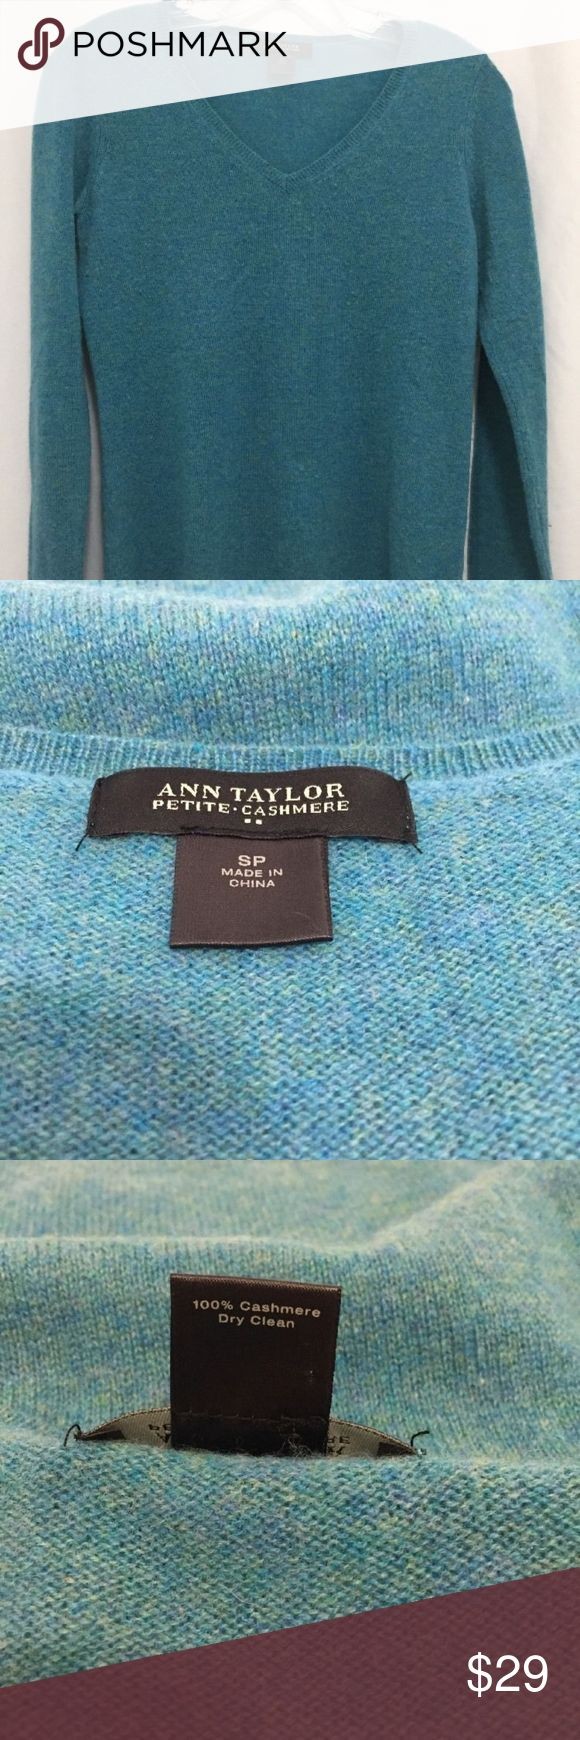 """Ann Taylor Womens Cashmere Sweater Top Type: Sweater Style: V-Neck  Brand: Ann Taylor  Material: 100% Cashmere  Color: Teal With Green  Sleeve Length: 24""""    Total Length: 24""""   Back Shoulder to Shoulder: 14"""" Bust Across: 18.5"""" Condition: Pre-owned with no stains, rips, or tears.  Country of Manufacturer: China  Inventory: 13 Thank you for looking! Ann Taylor Sweaters V-Necks"""